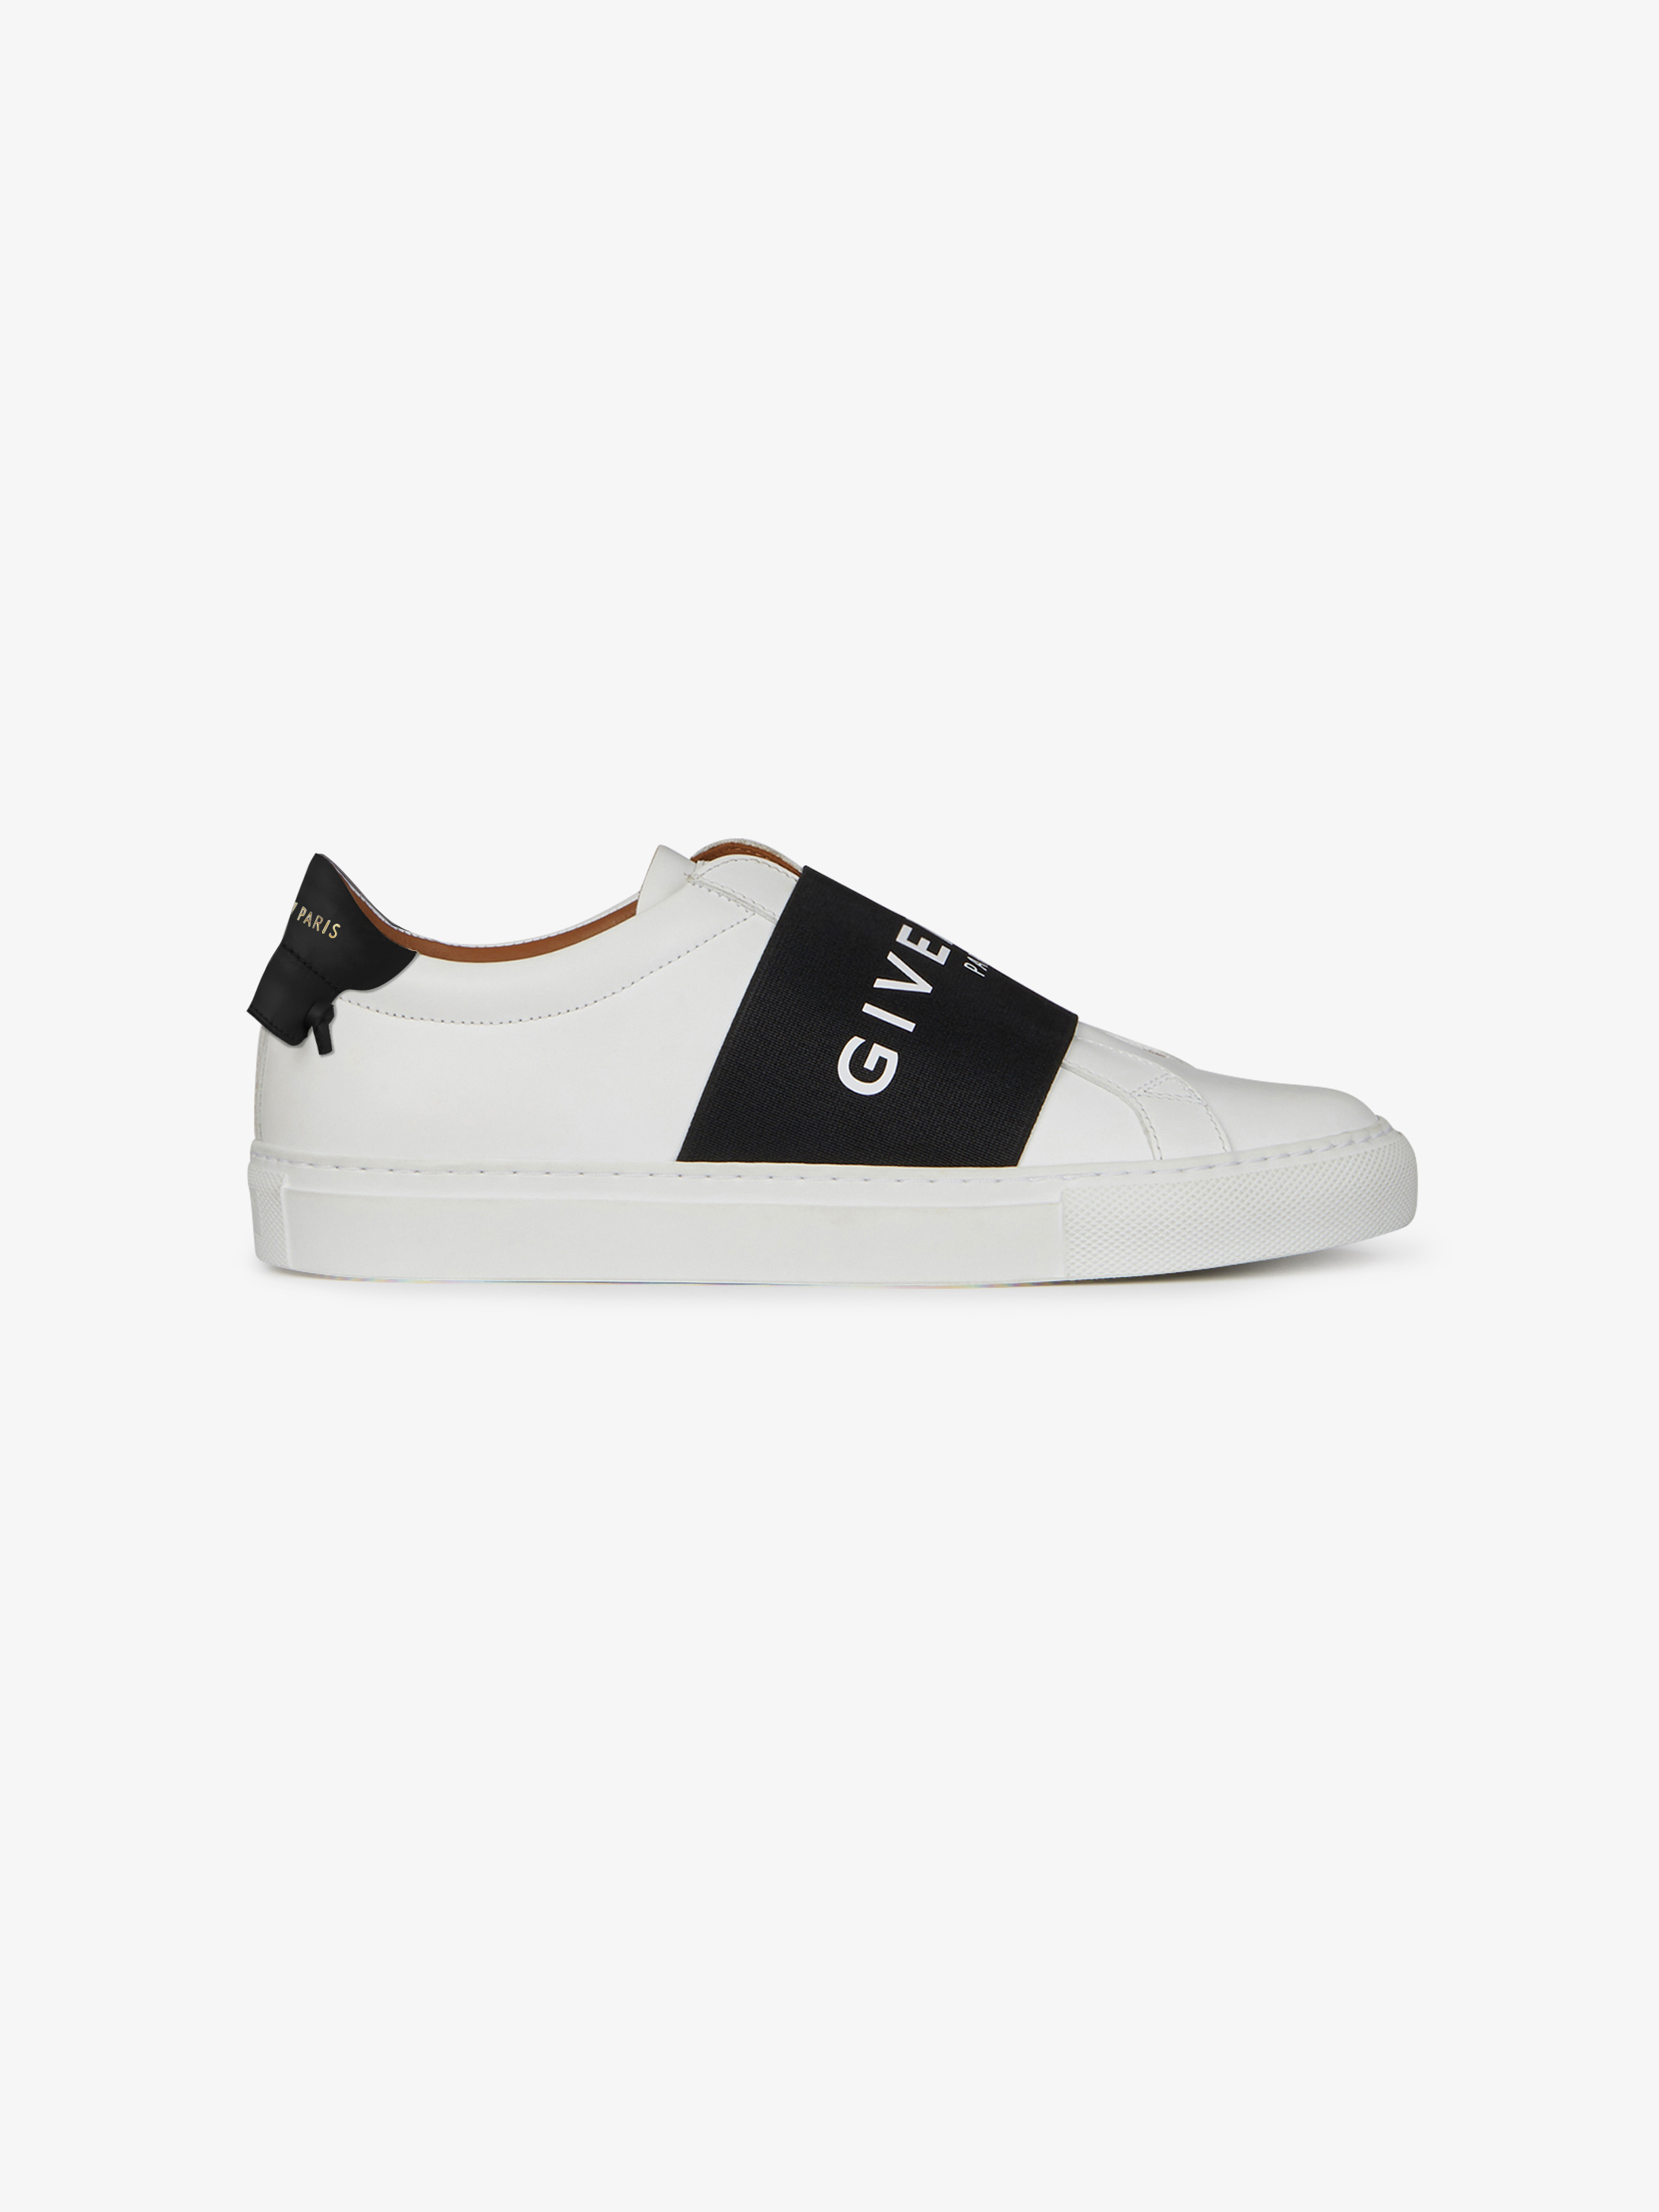 GIVENCHY PARIS sneakers in leather